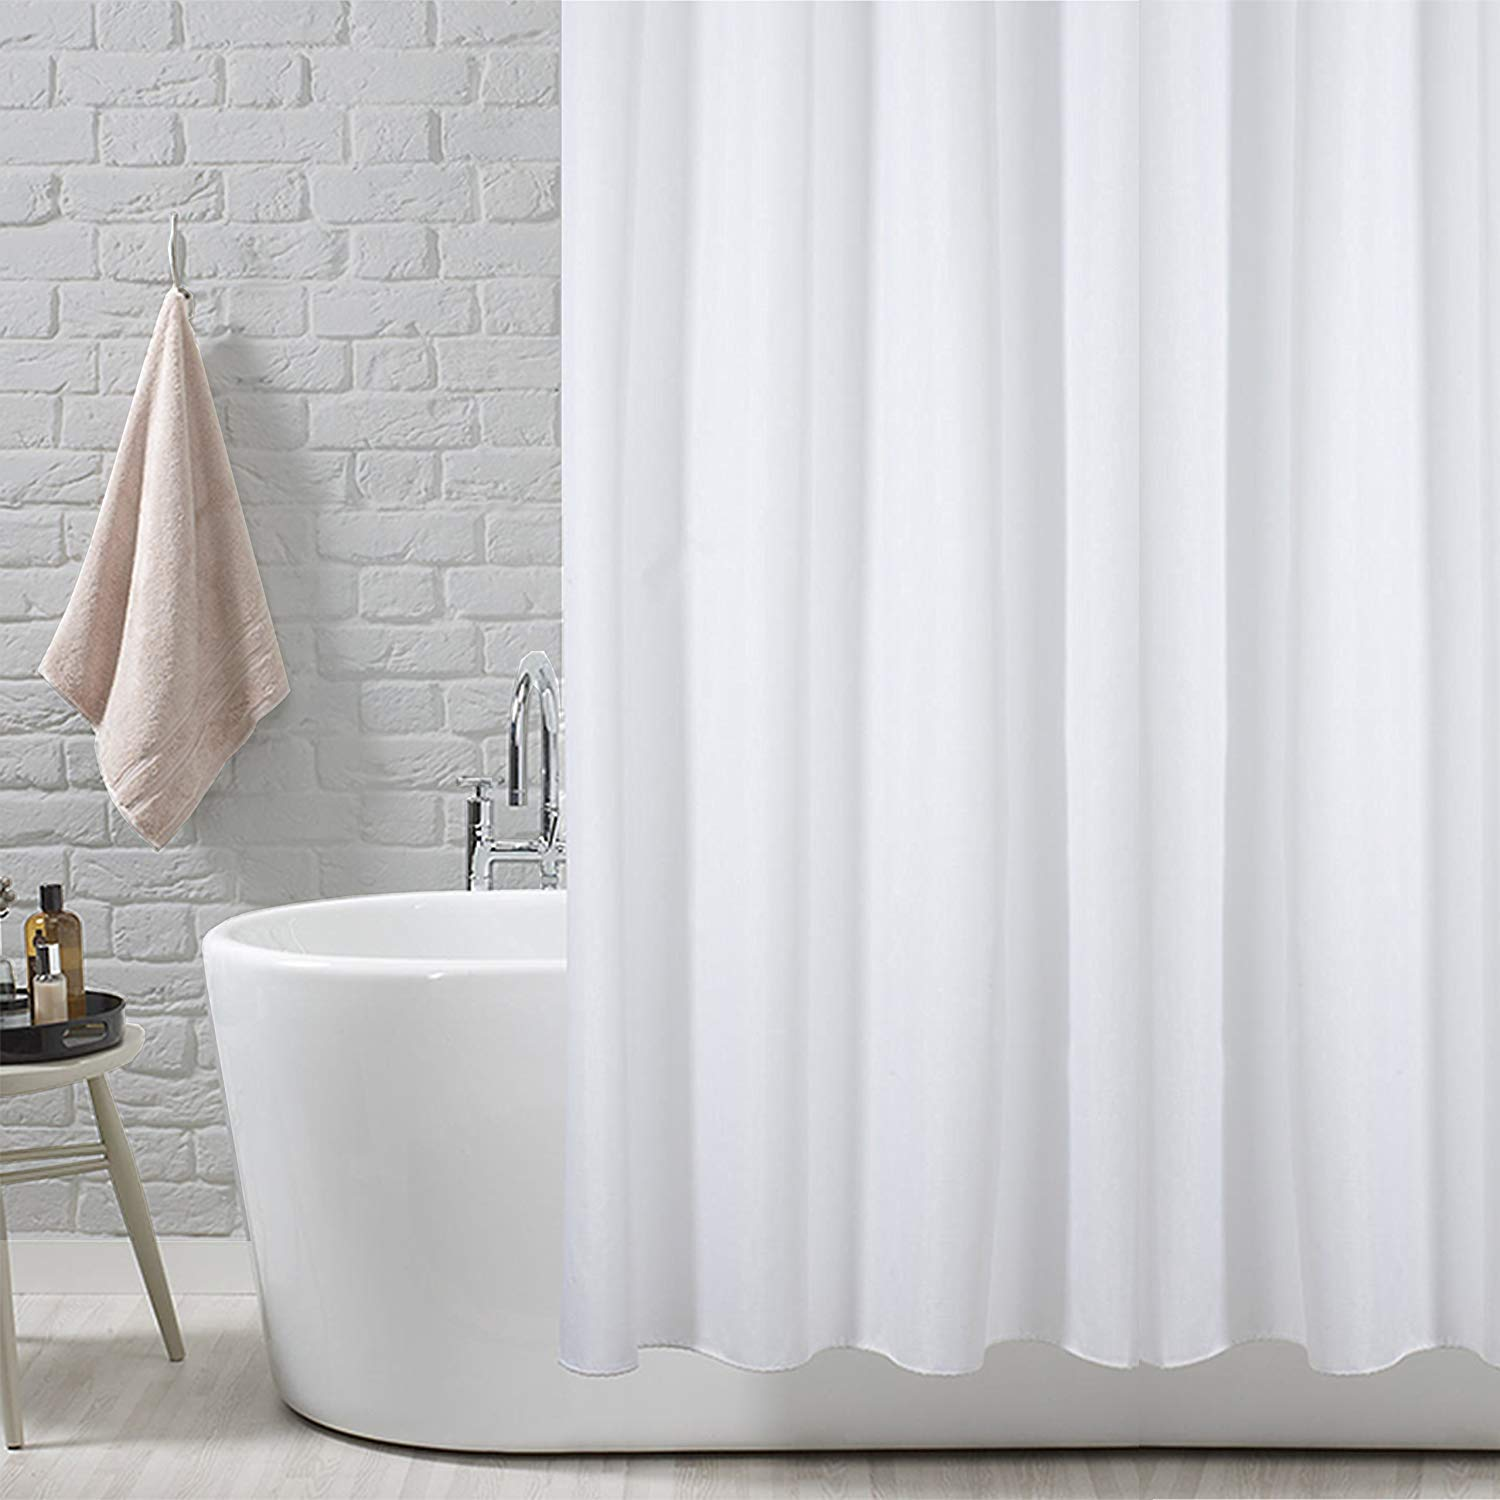 ANSIO Shower Curtain Liner Mildew Resistant Anti Bacterial 71 X Inches 180 Cm Solid White